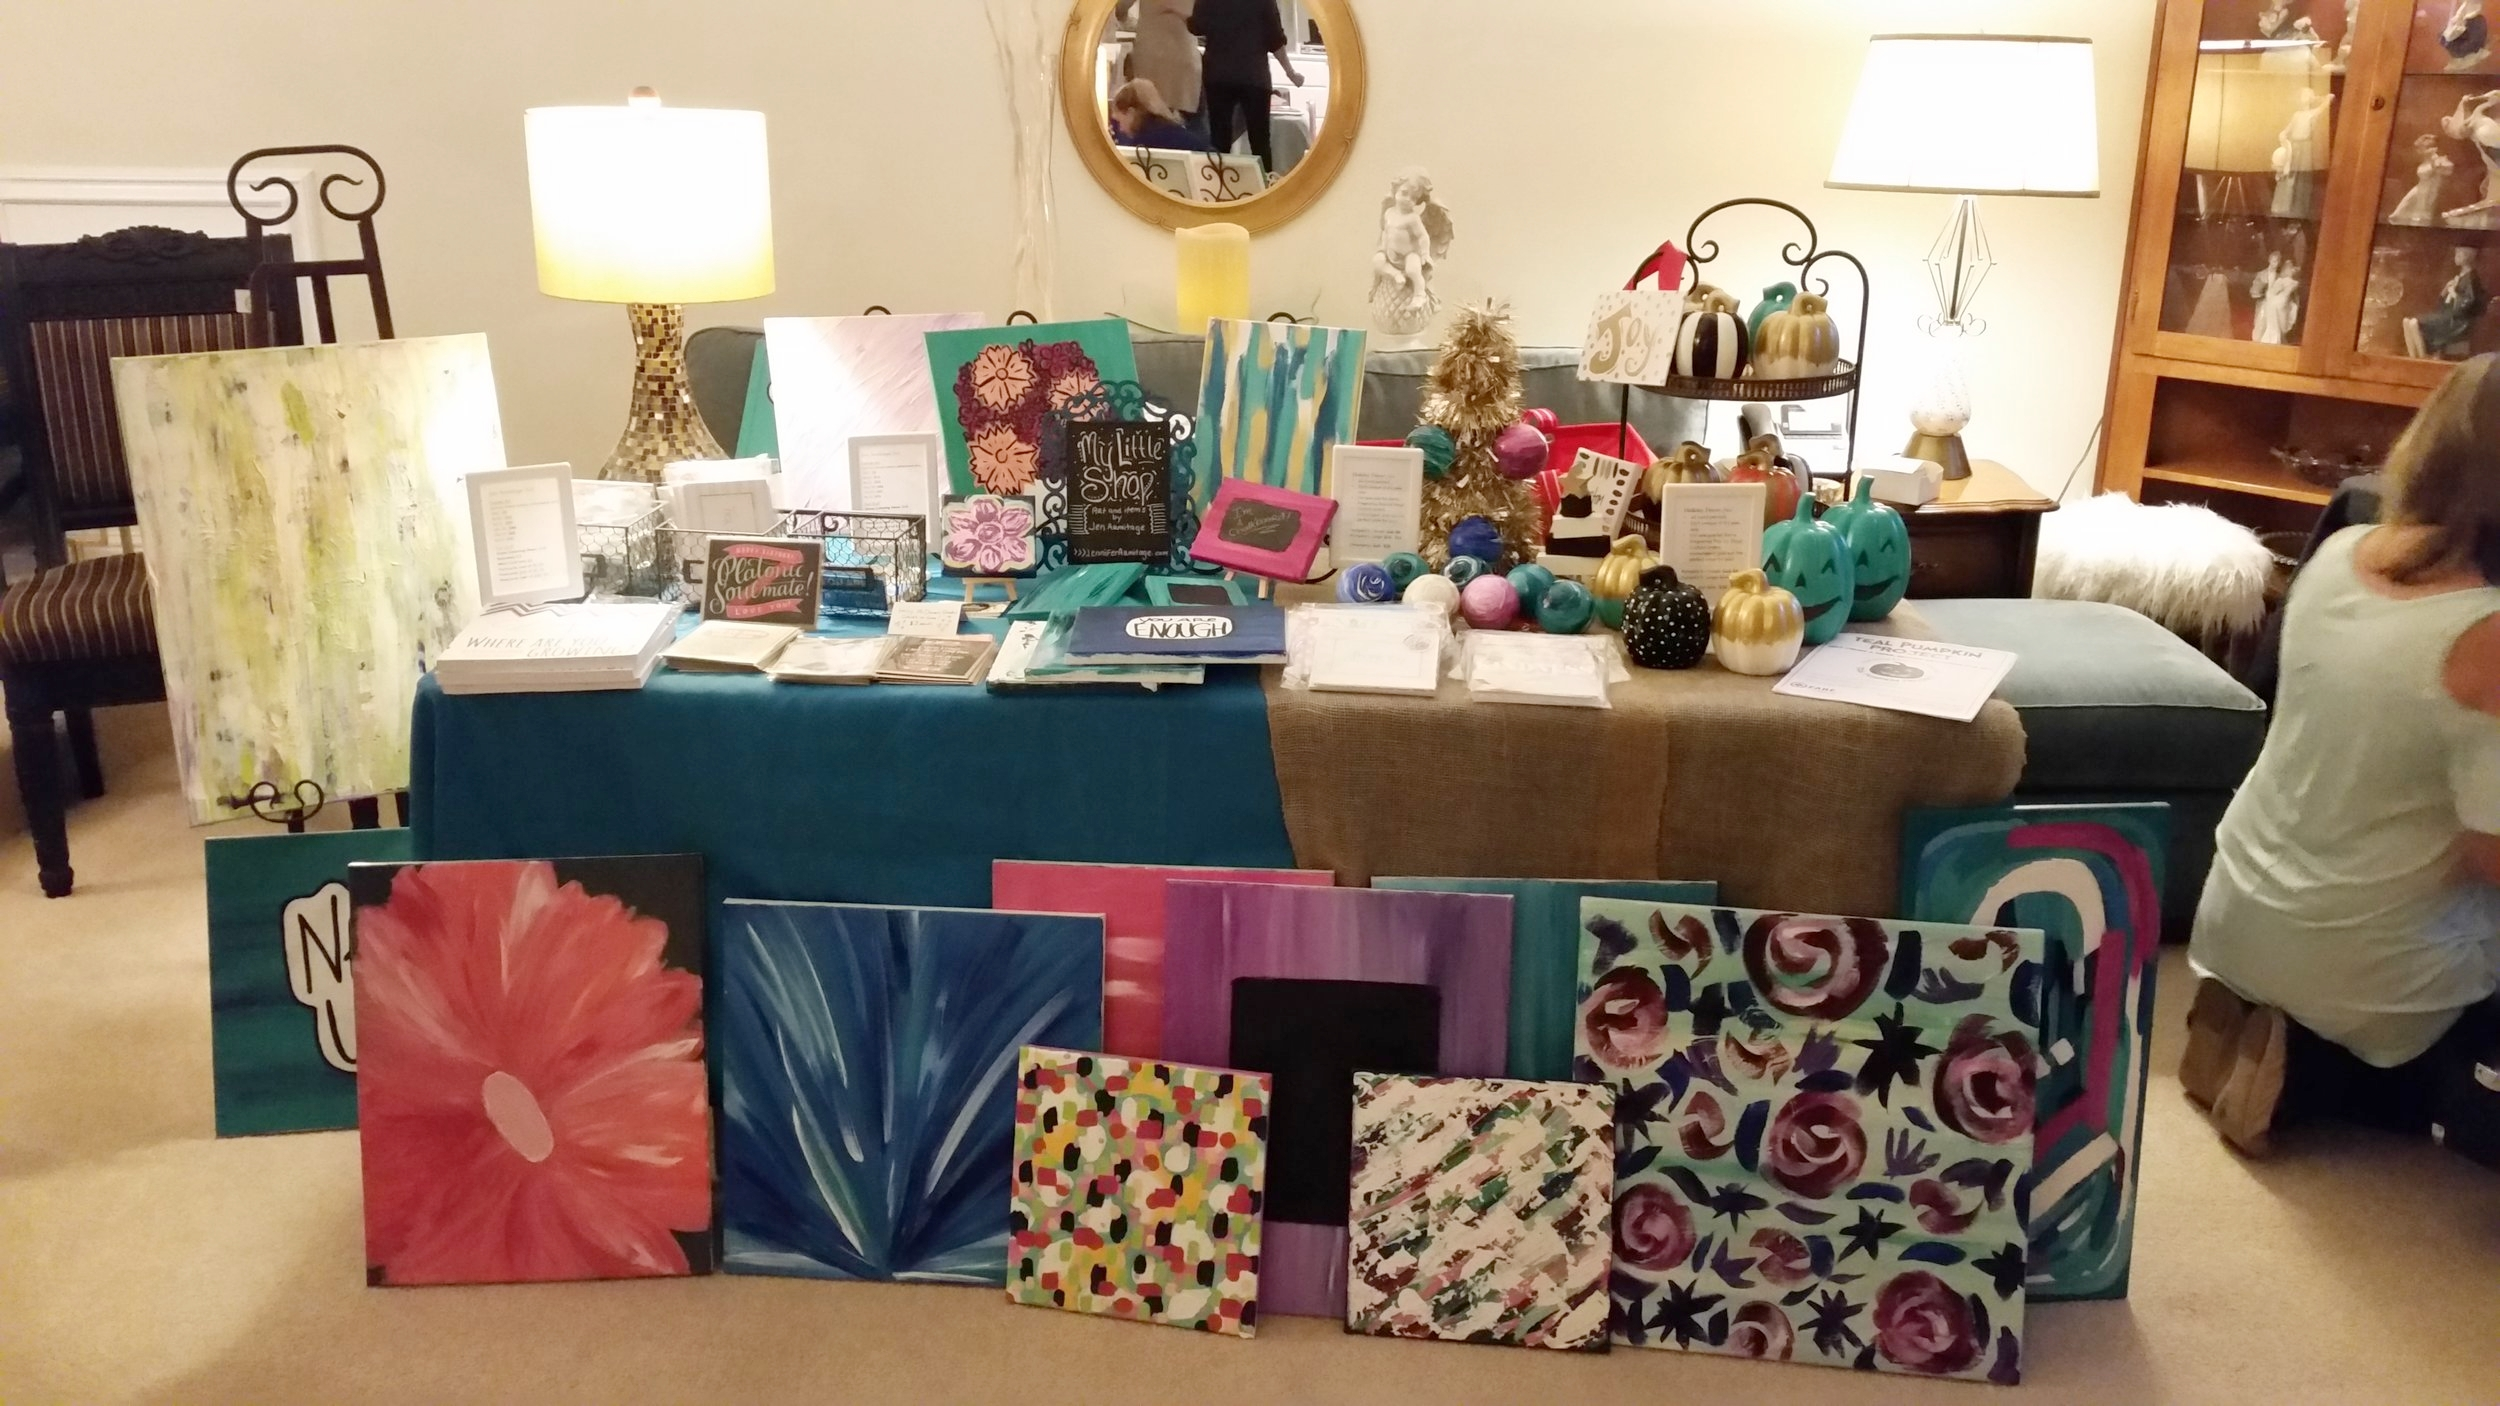 My table at the Pop Up Shop.